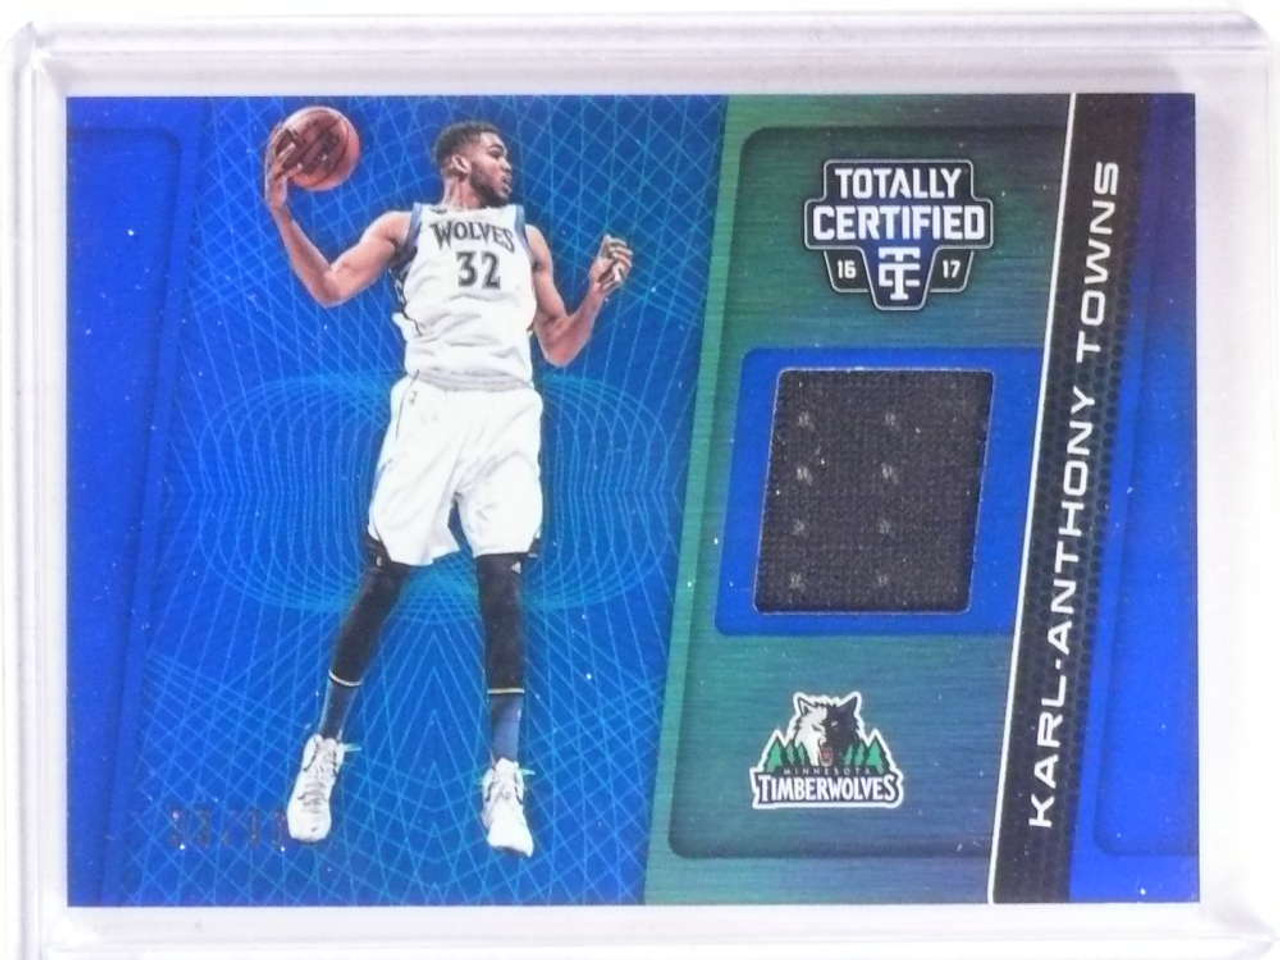 new product 1e3de 21558 2016-17 Panini Totally Certified Karl-Anthony Towns jersey #D33/99 #6 *68459